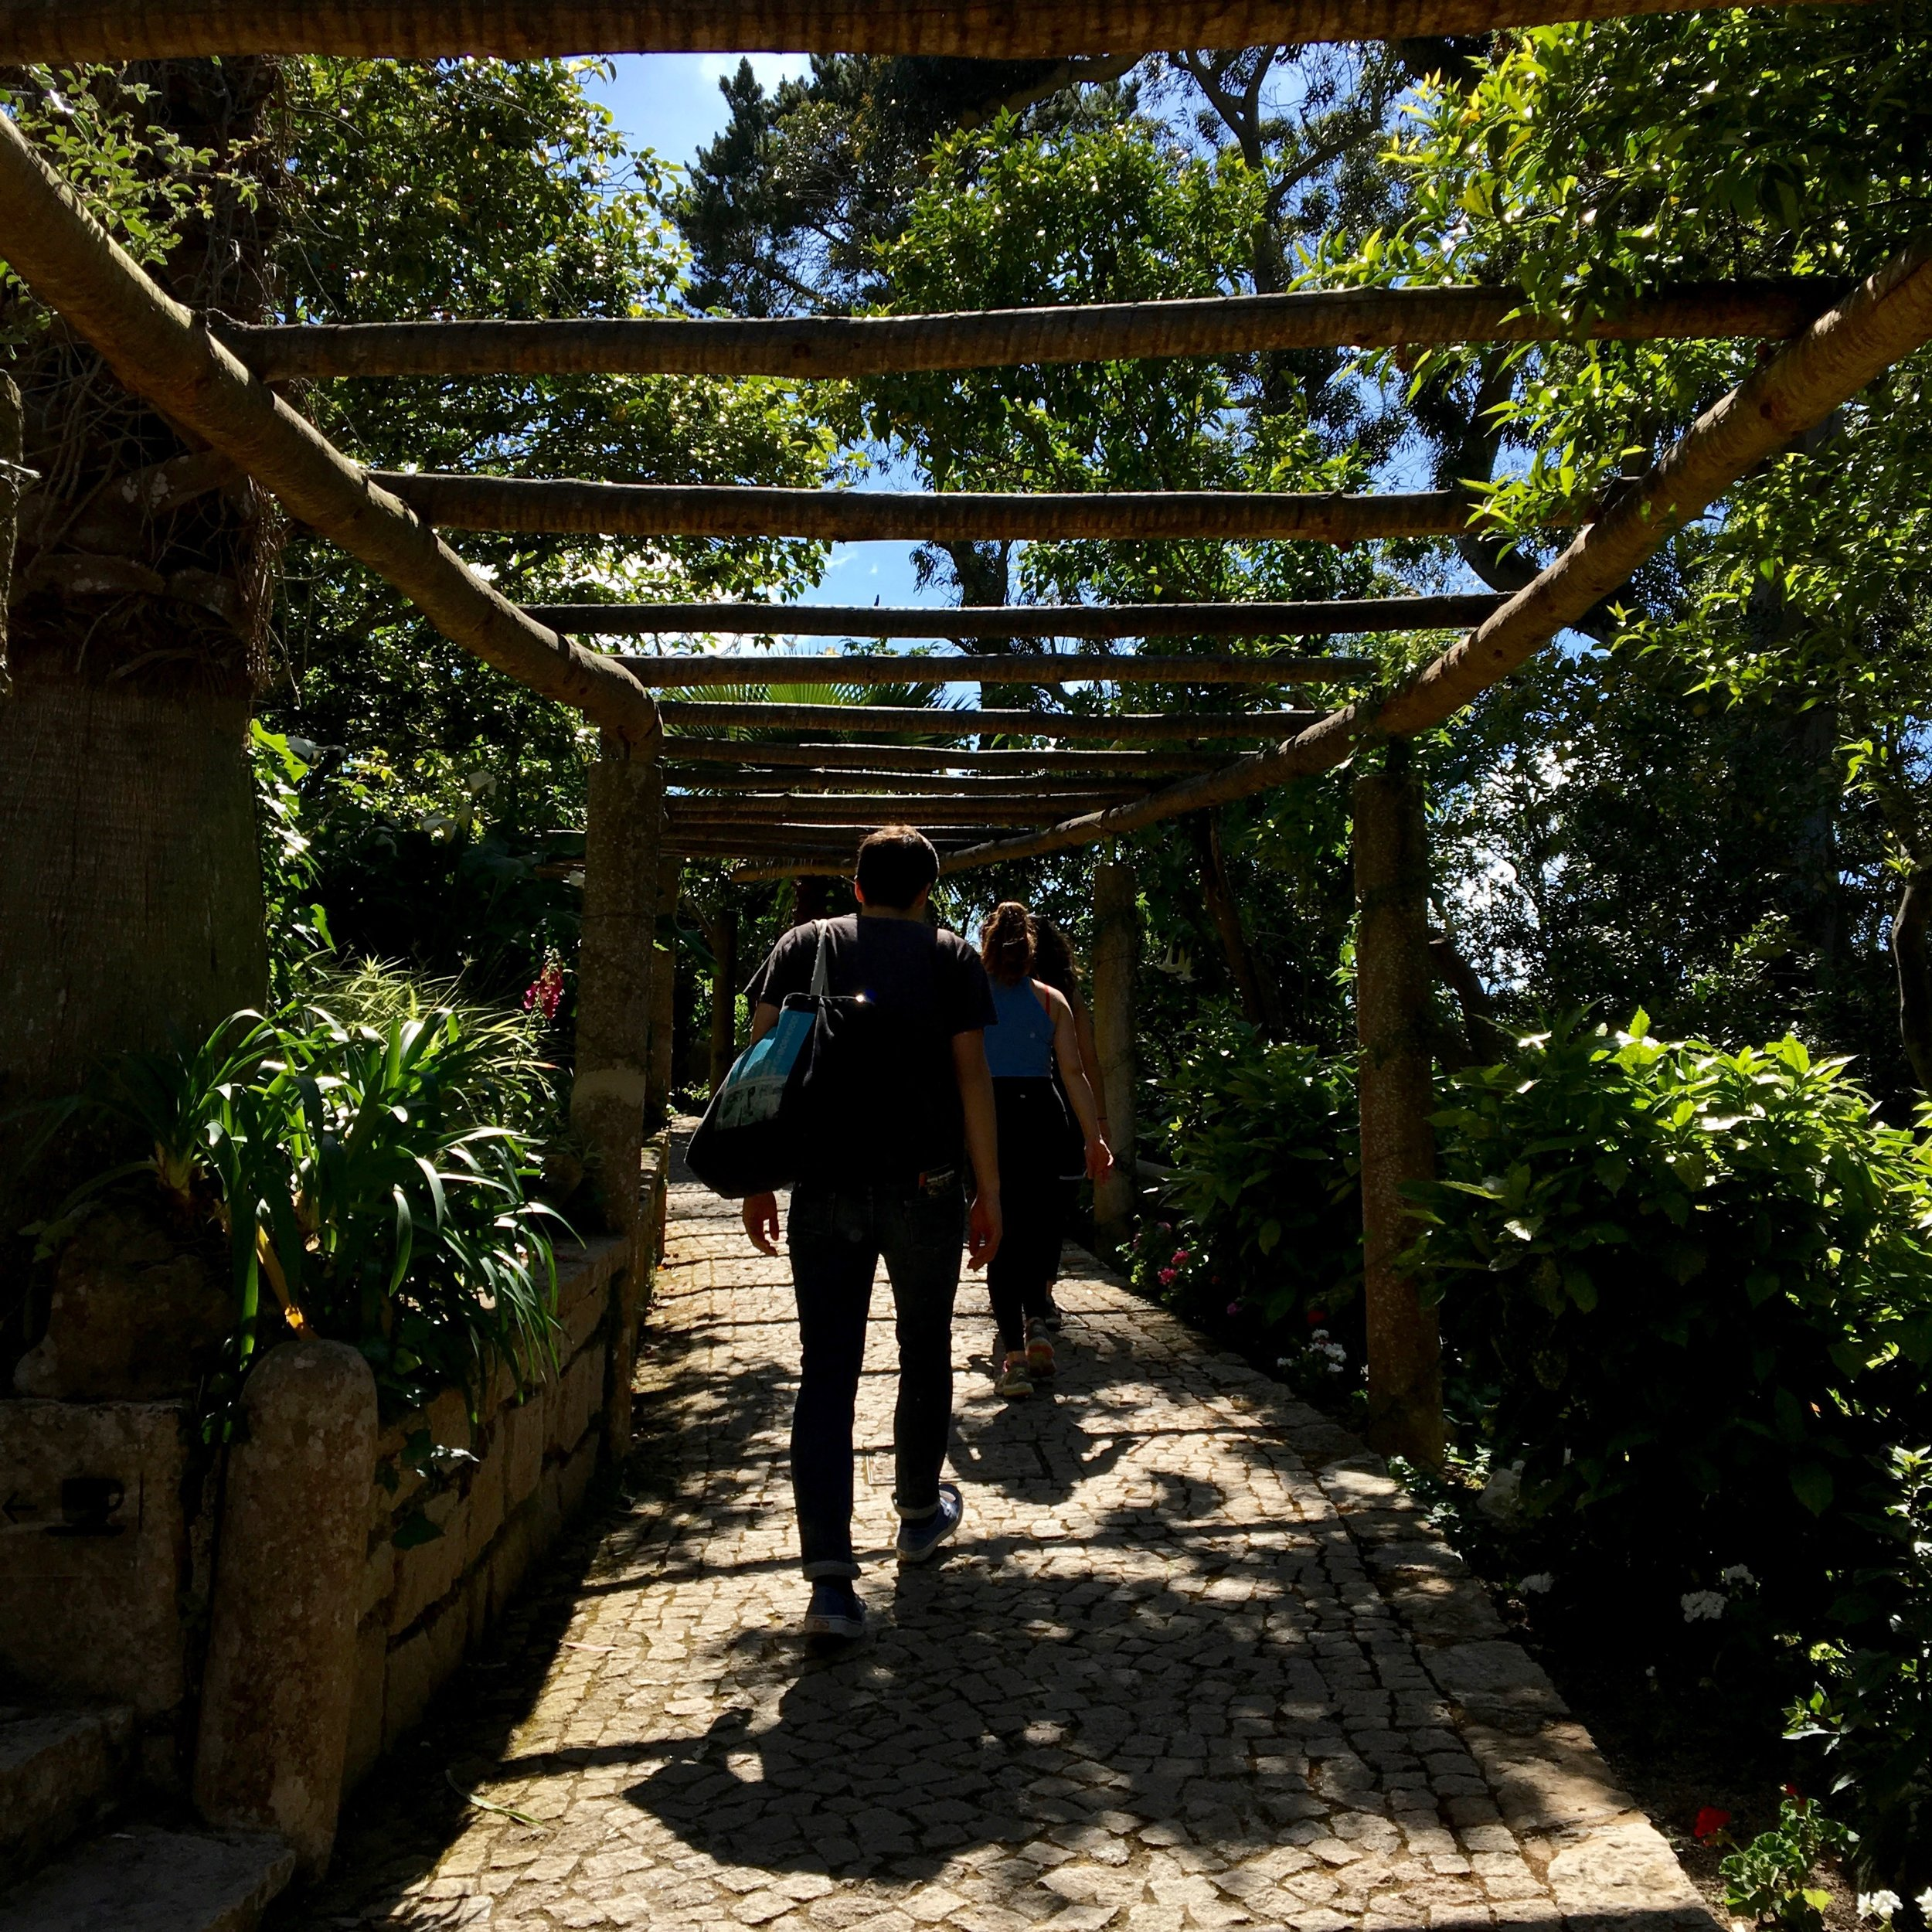 Hiking up to the castles in Sintra, Portugal  @lovethealchemist